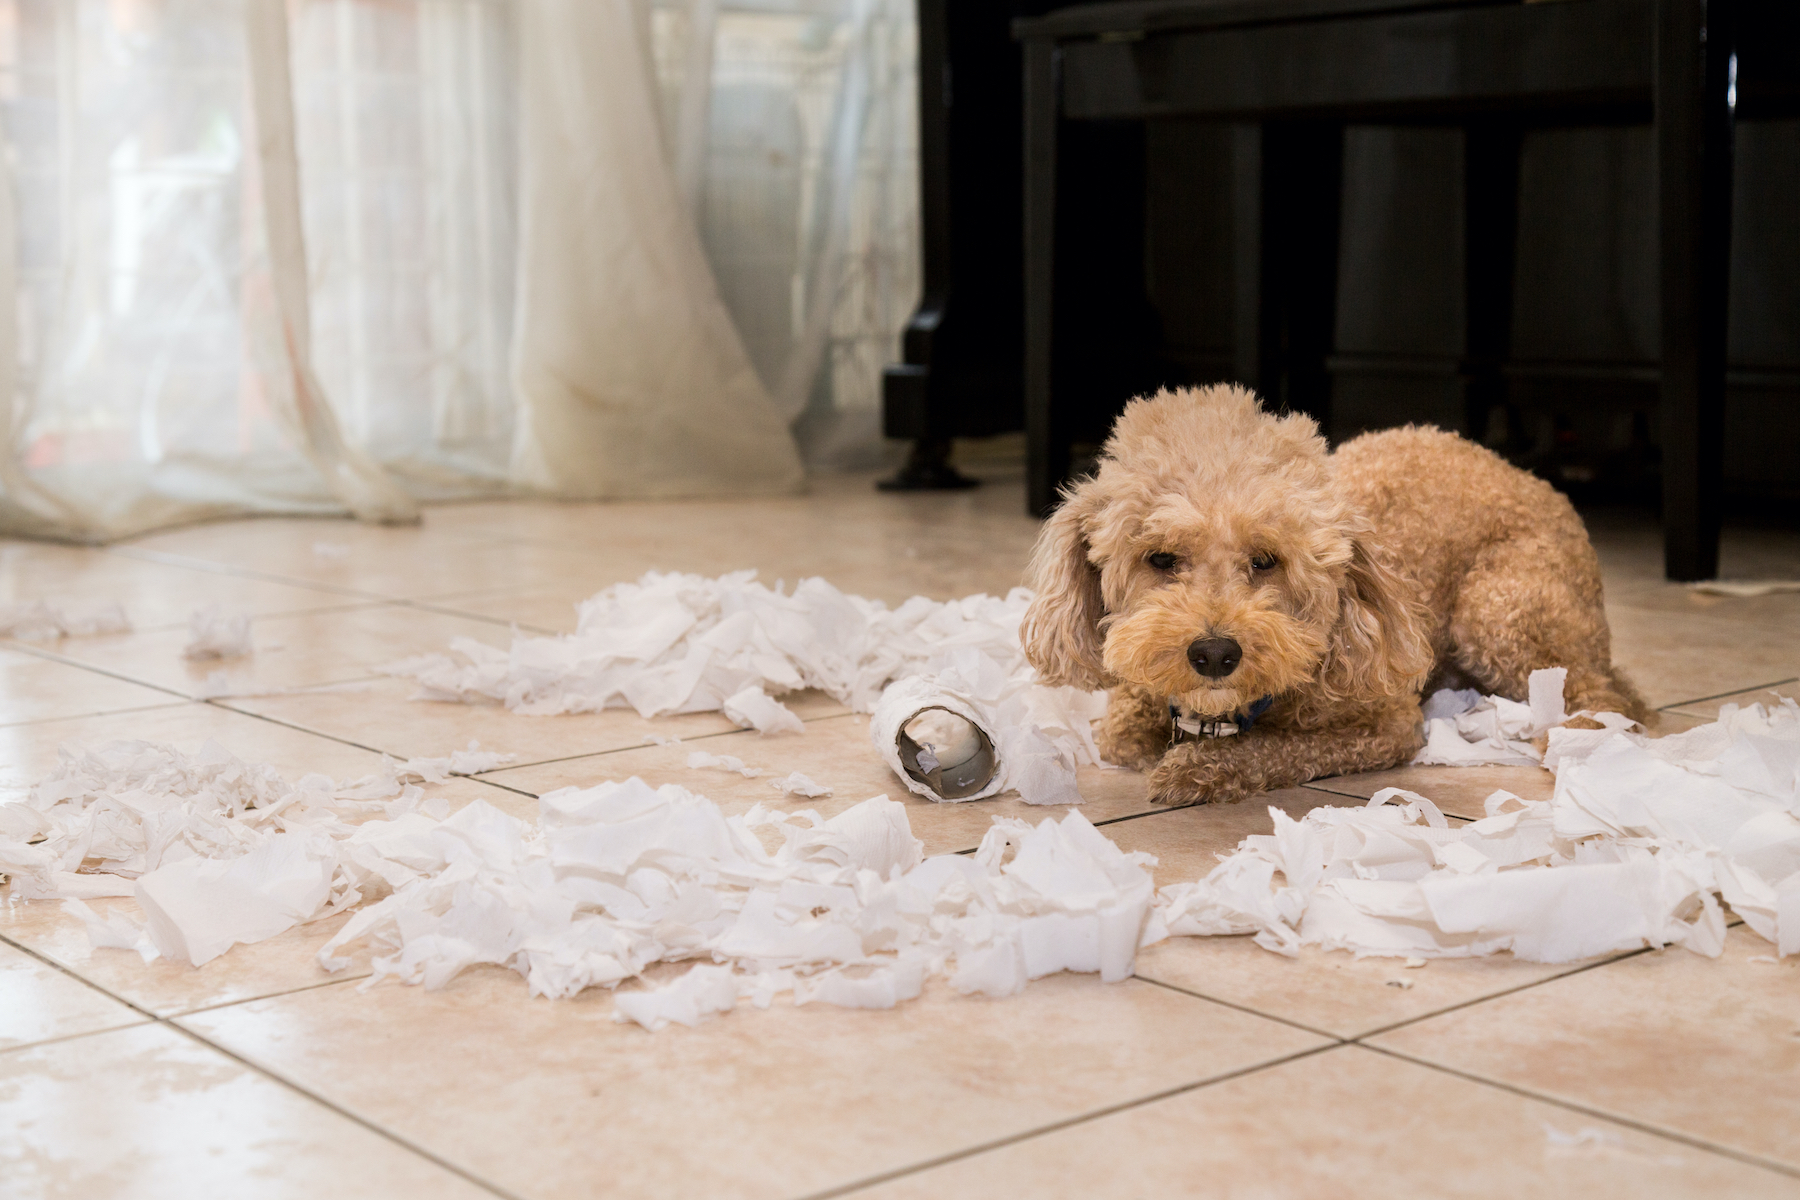 bored dog with ripped toilet paper